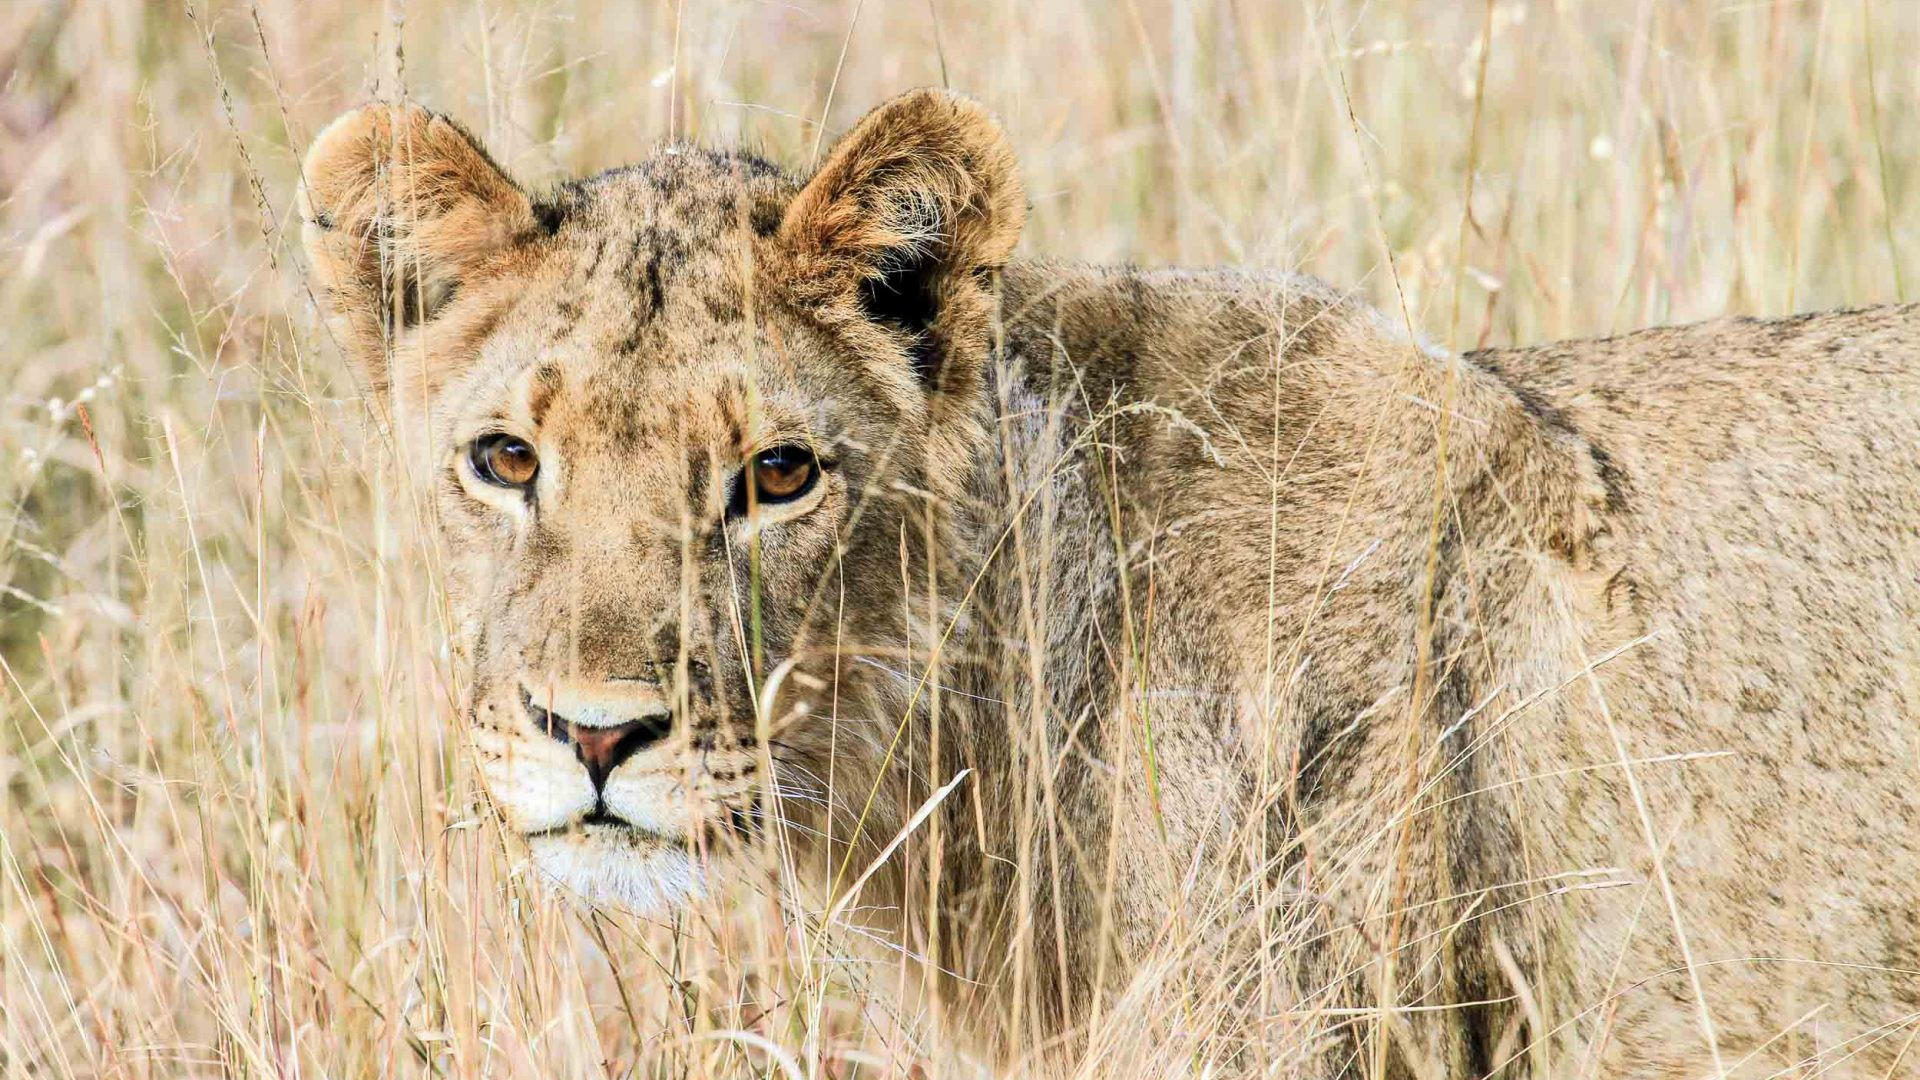 One of the six cubs of Cecil's pride, the lion who was hunted and killed just outside Hwange National Park, Zimbabwe in 2015.